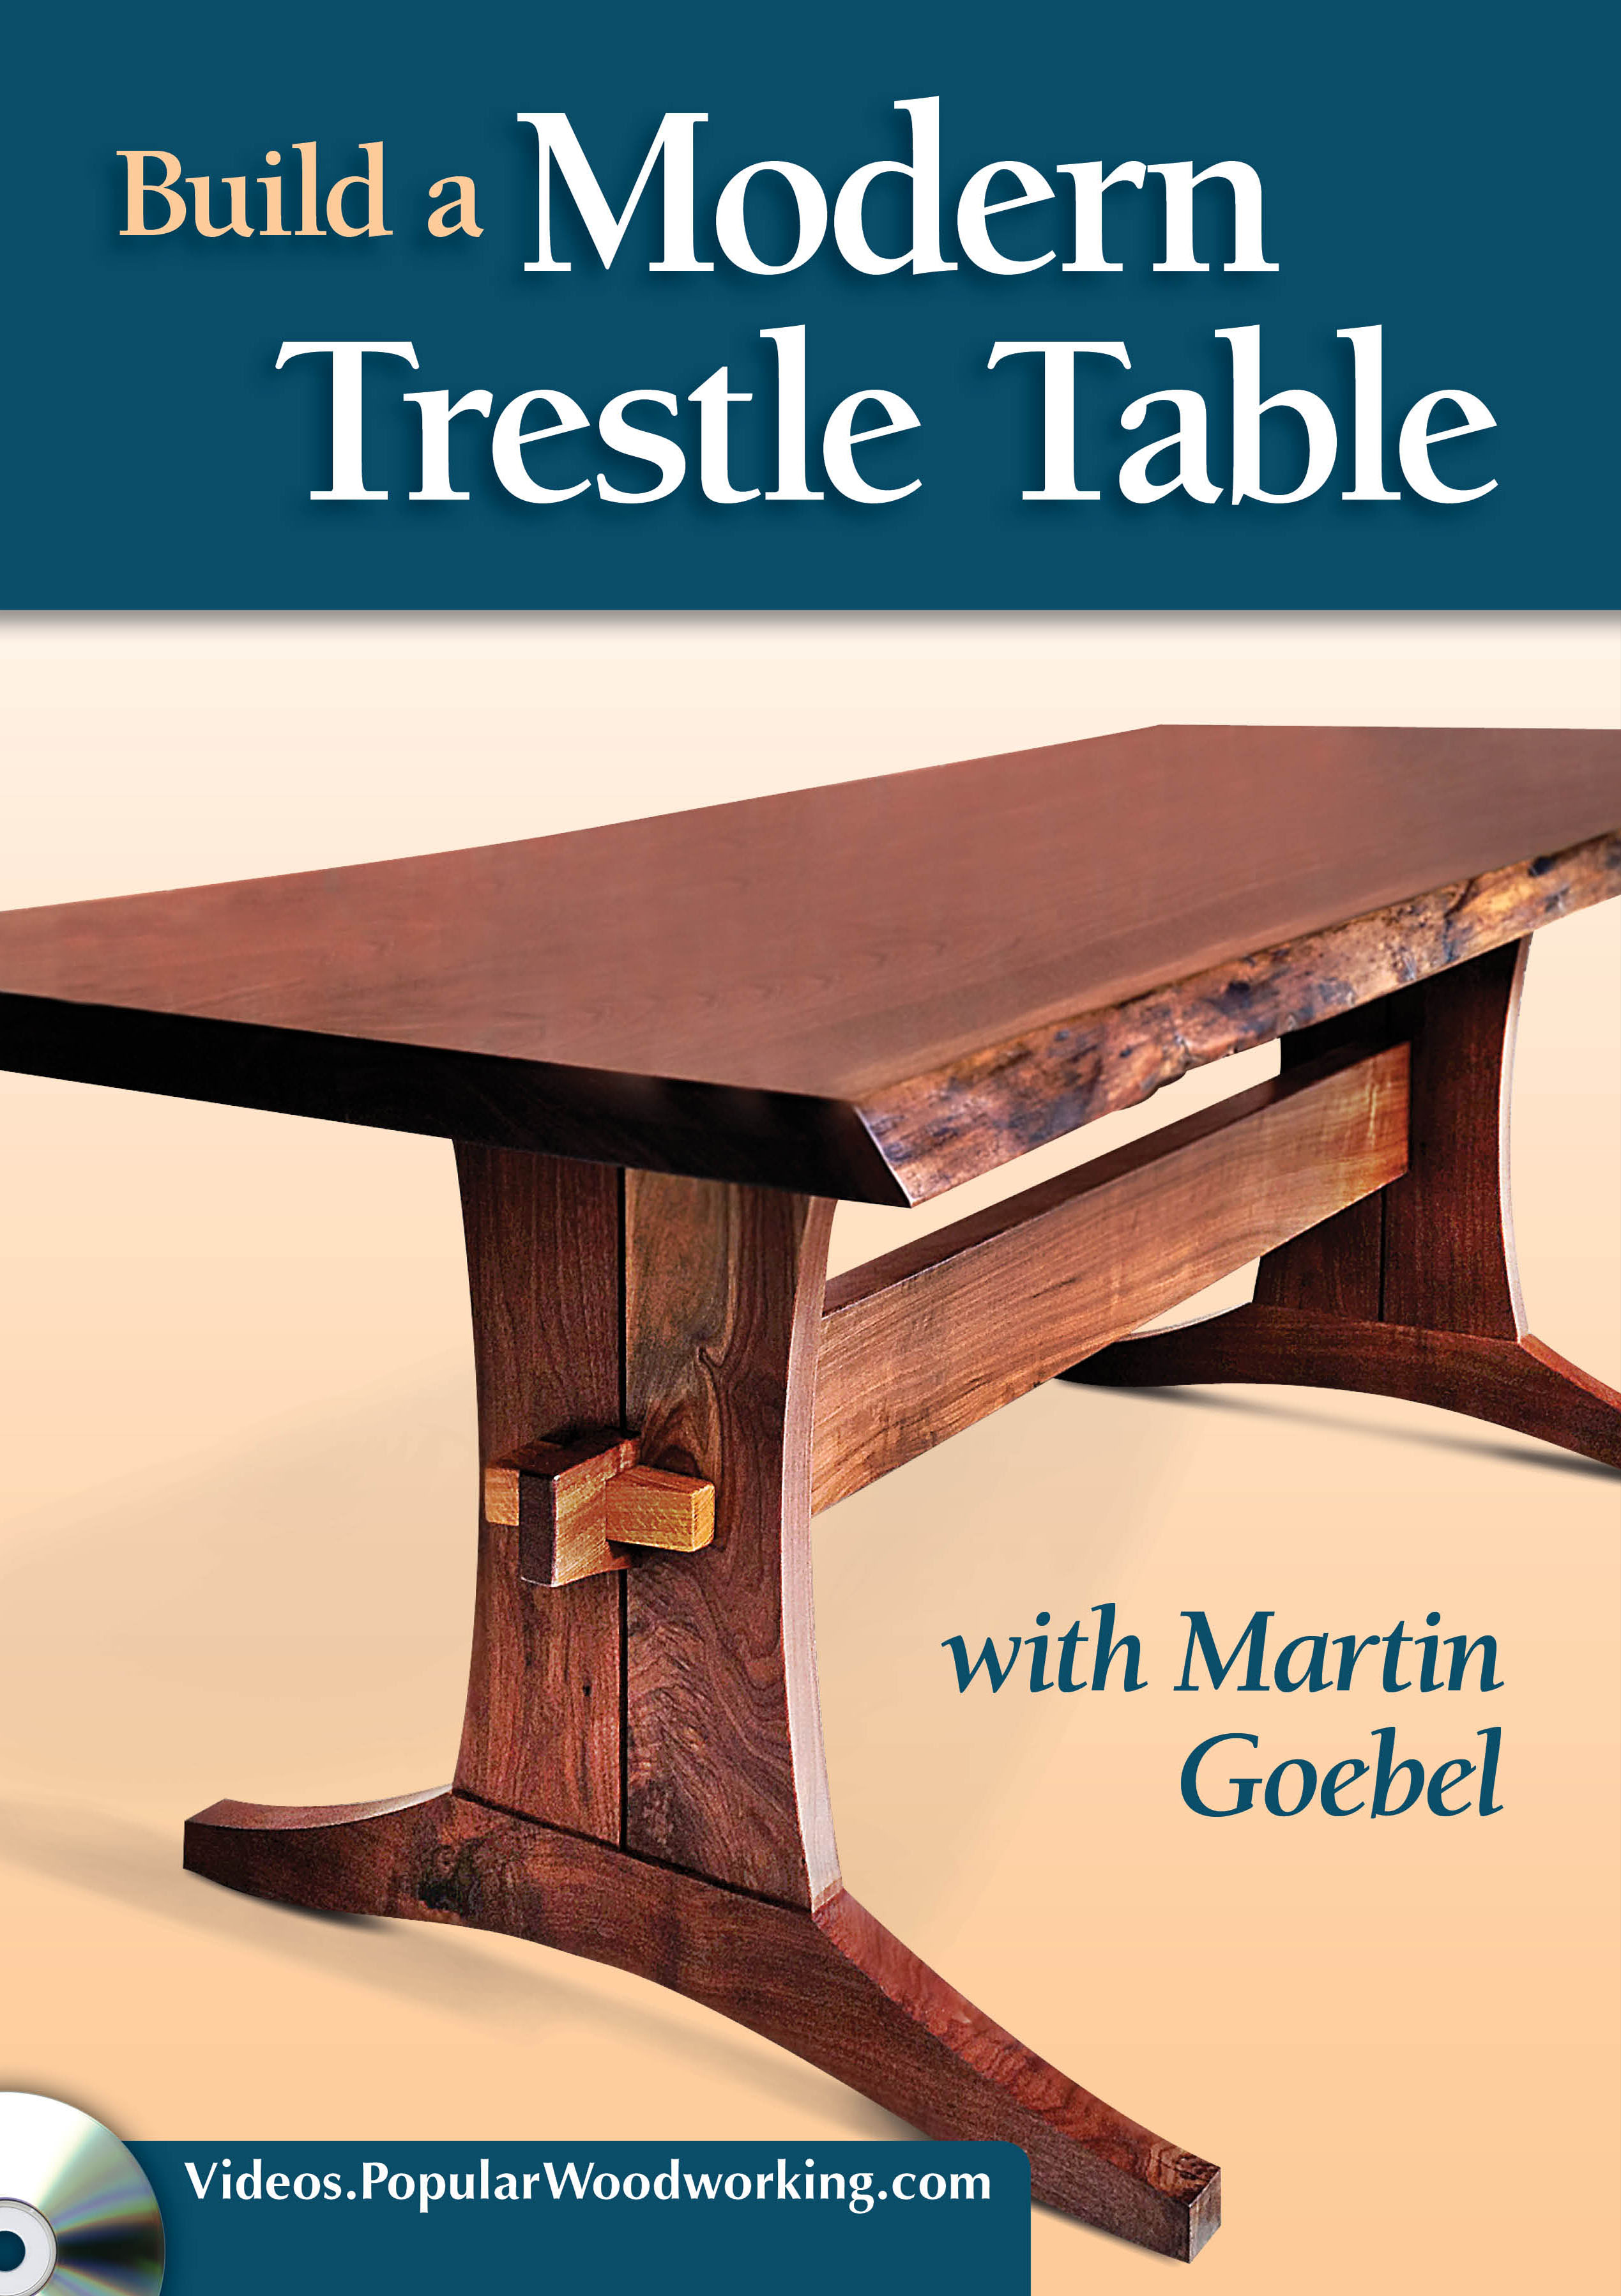 Build A Modern Trestle Table Video Download Popular Woodworking Magazine